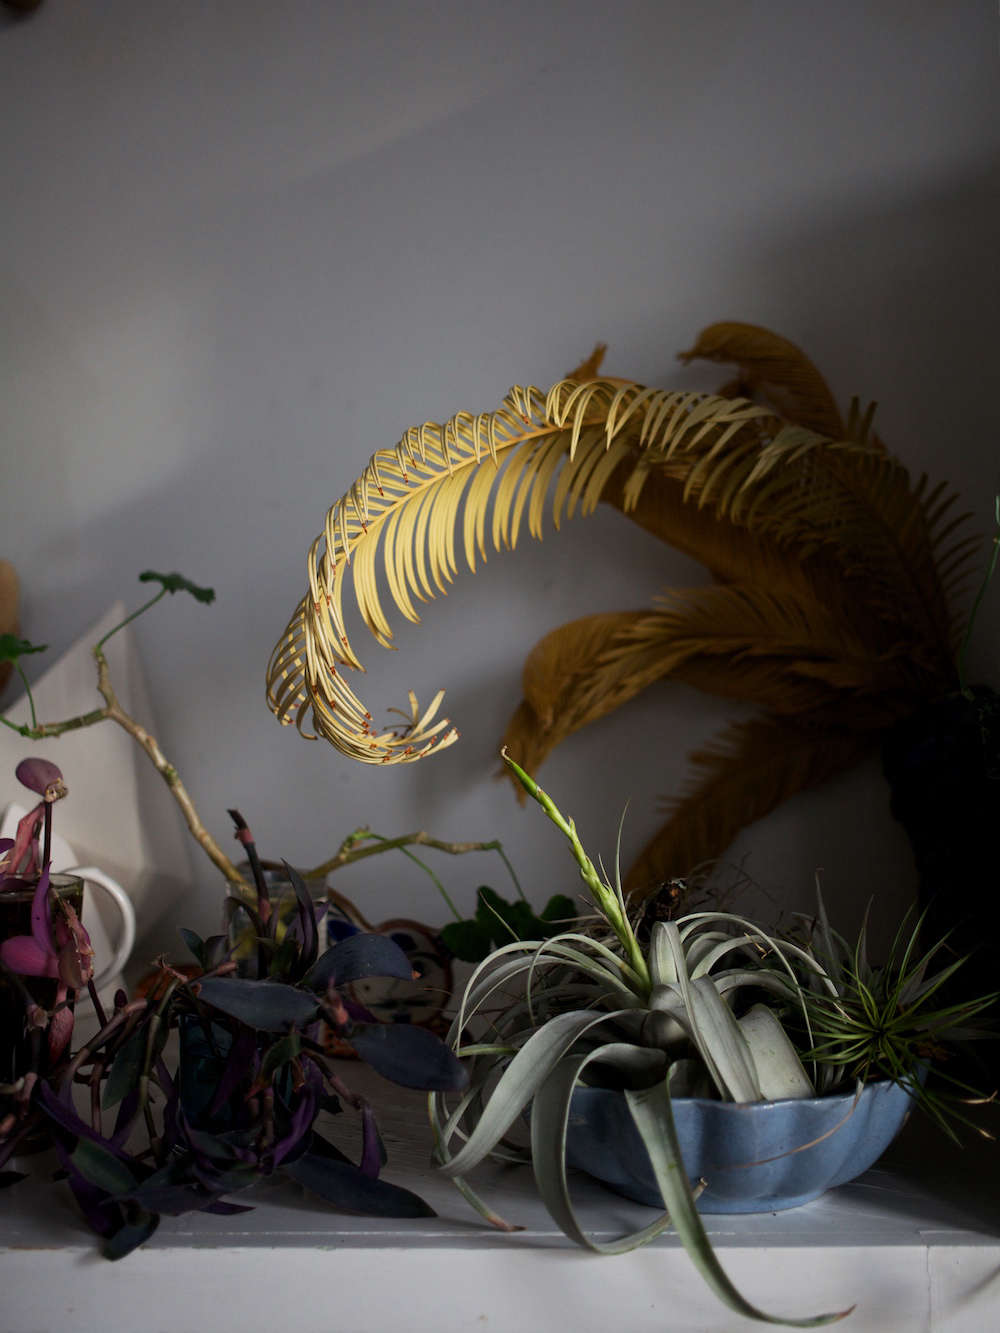 The dried sago palm fronds were a gift from her boyfriend; they&#8